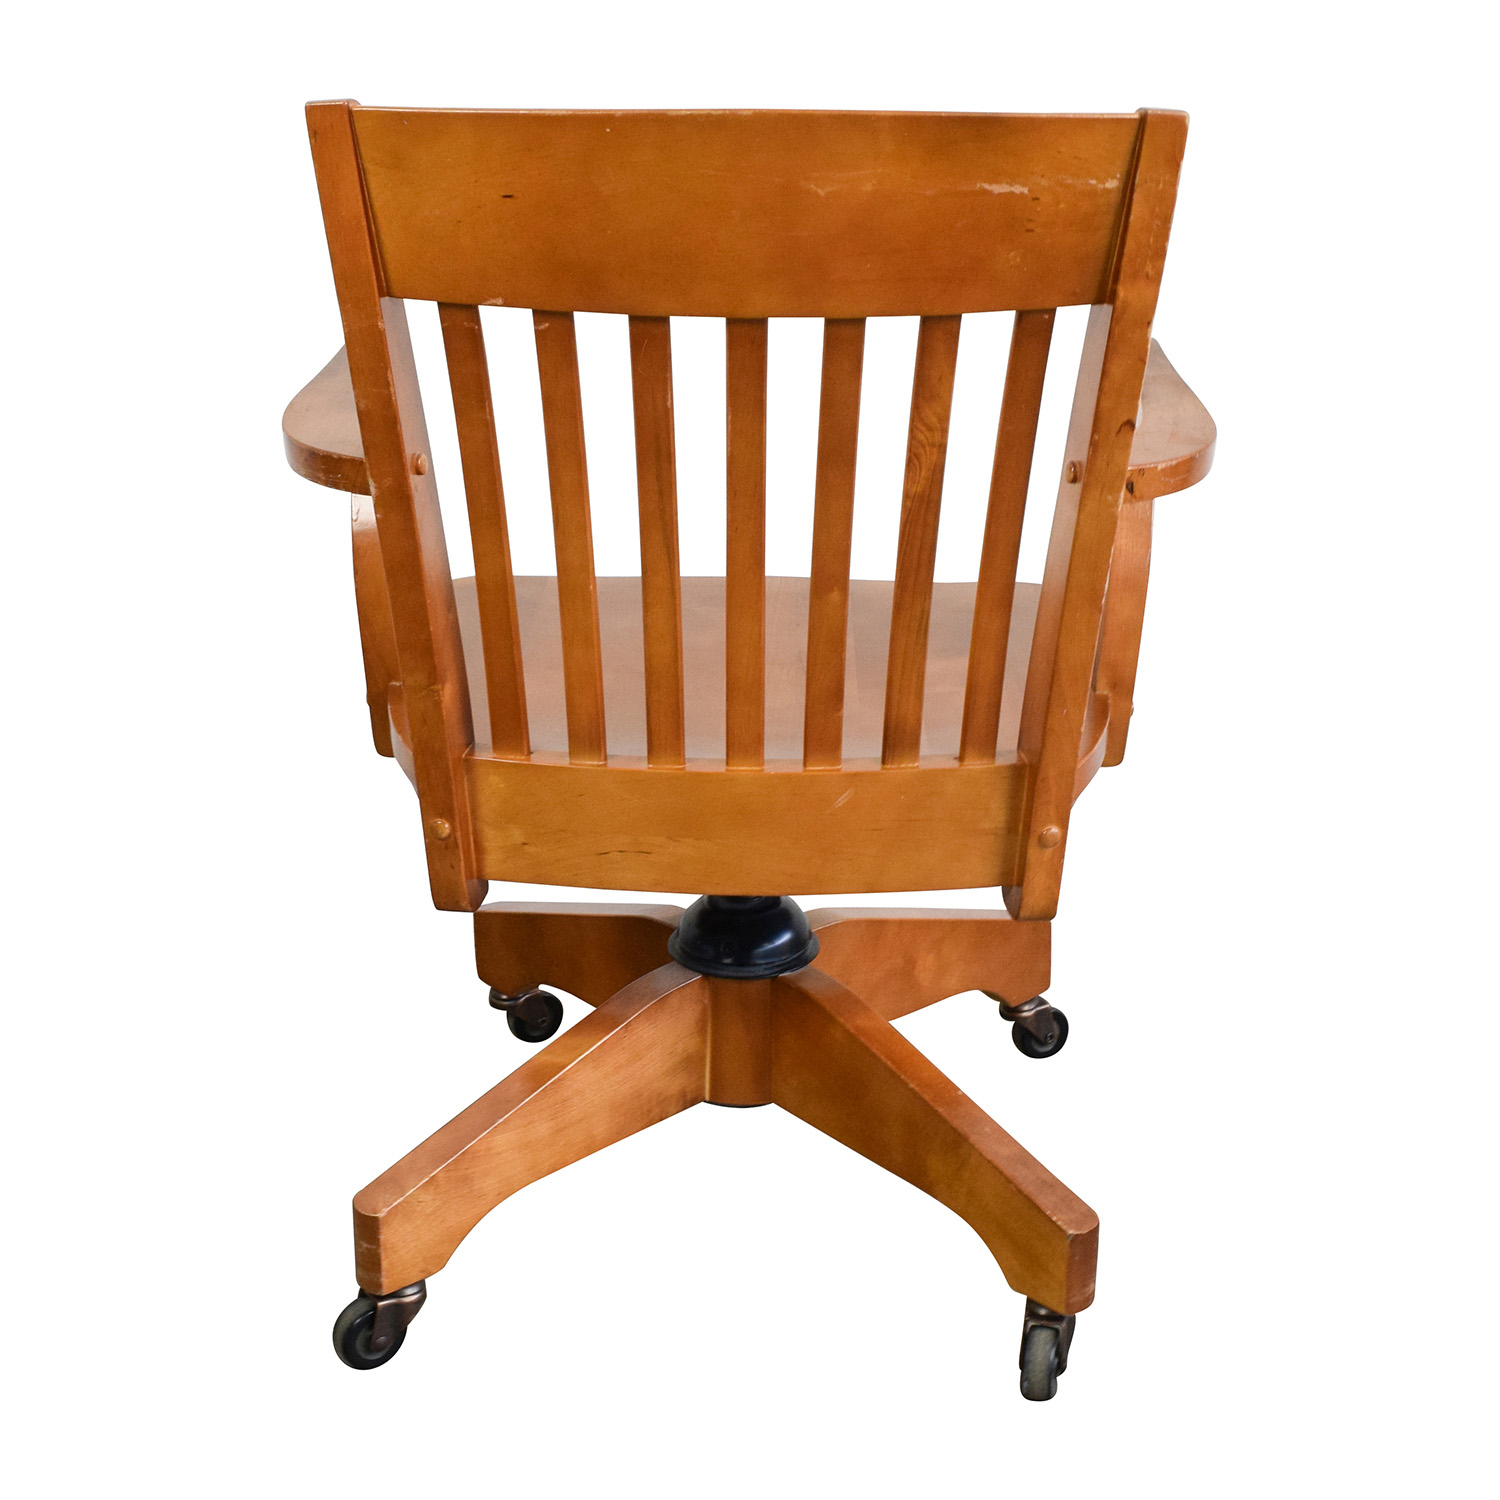 Pottery Barn Furniture Chairs: Pottery Barn Pottery Barn Swivel Desk Chair / Chairs